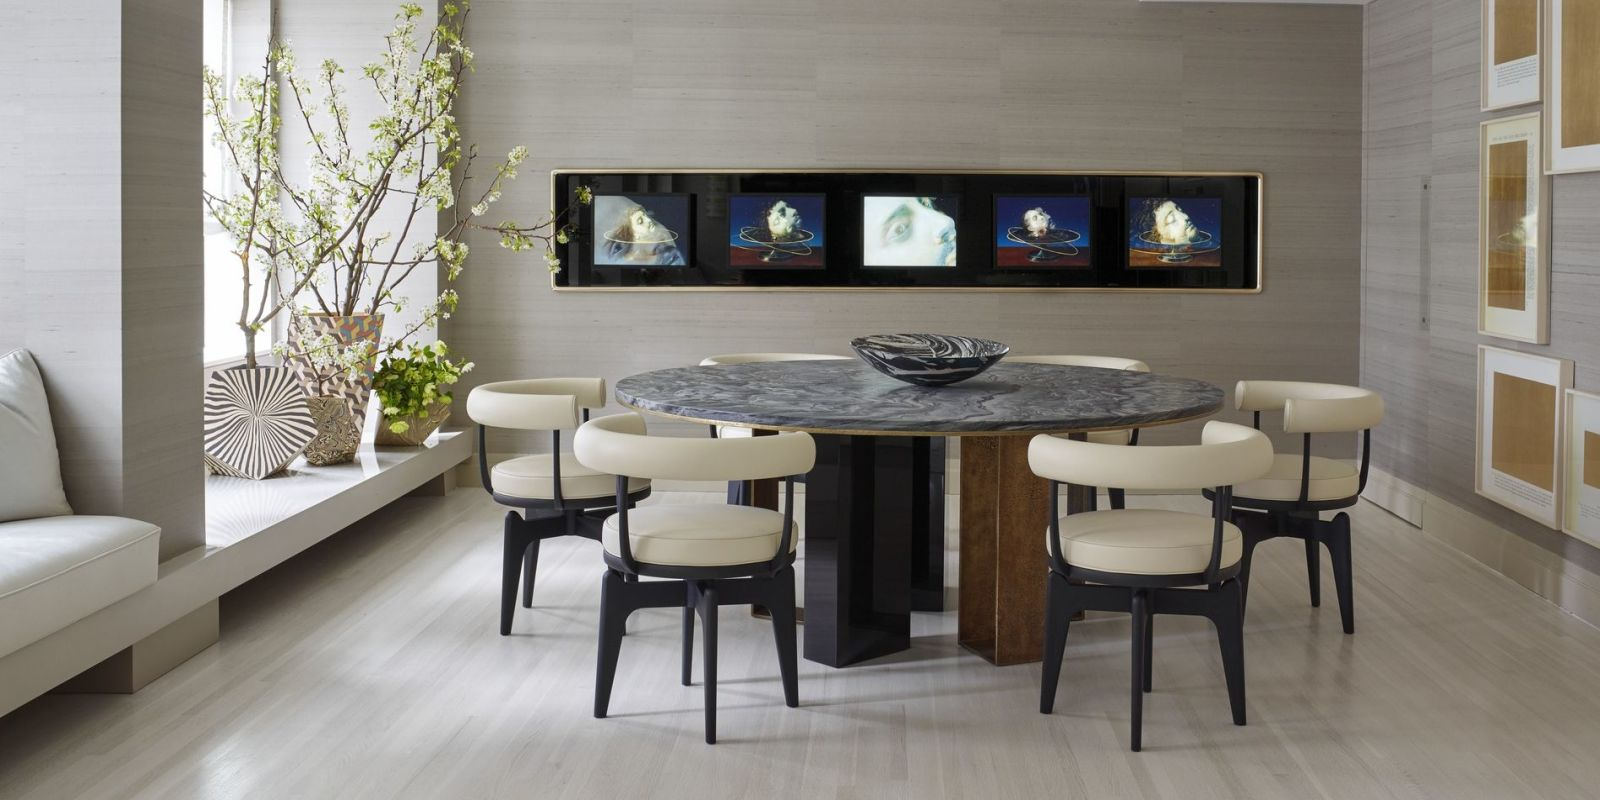 25 modern dining room decorating ideas contemporary for Contemporary dining room